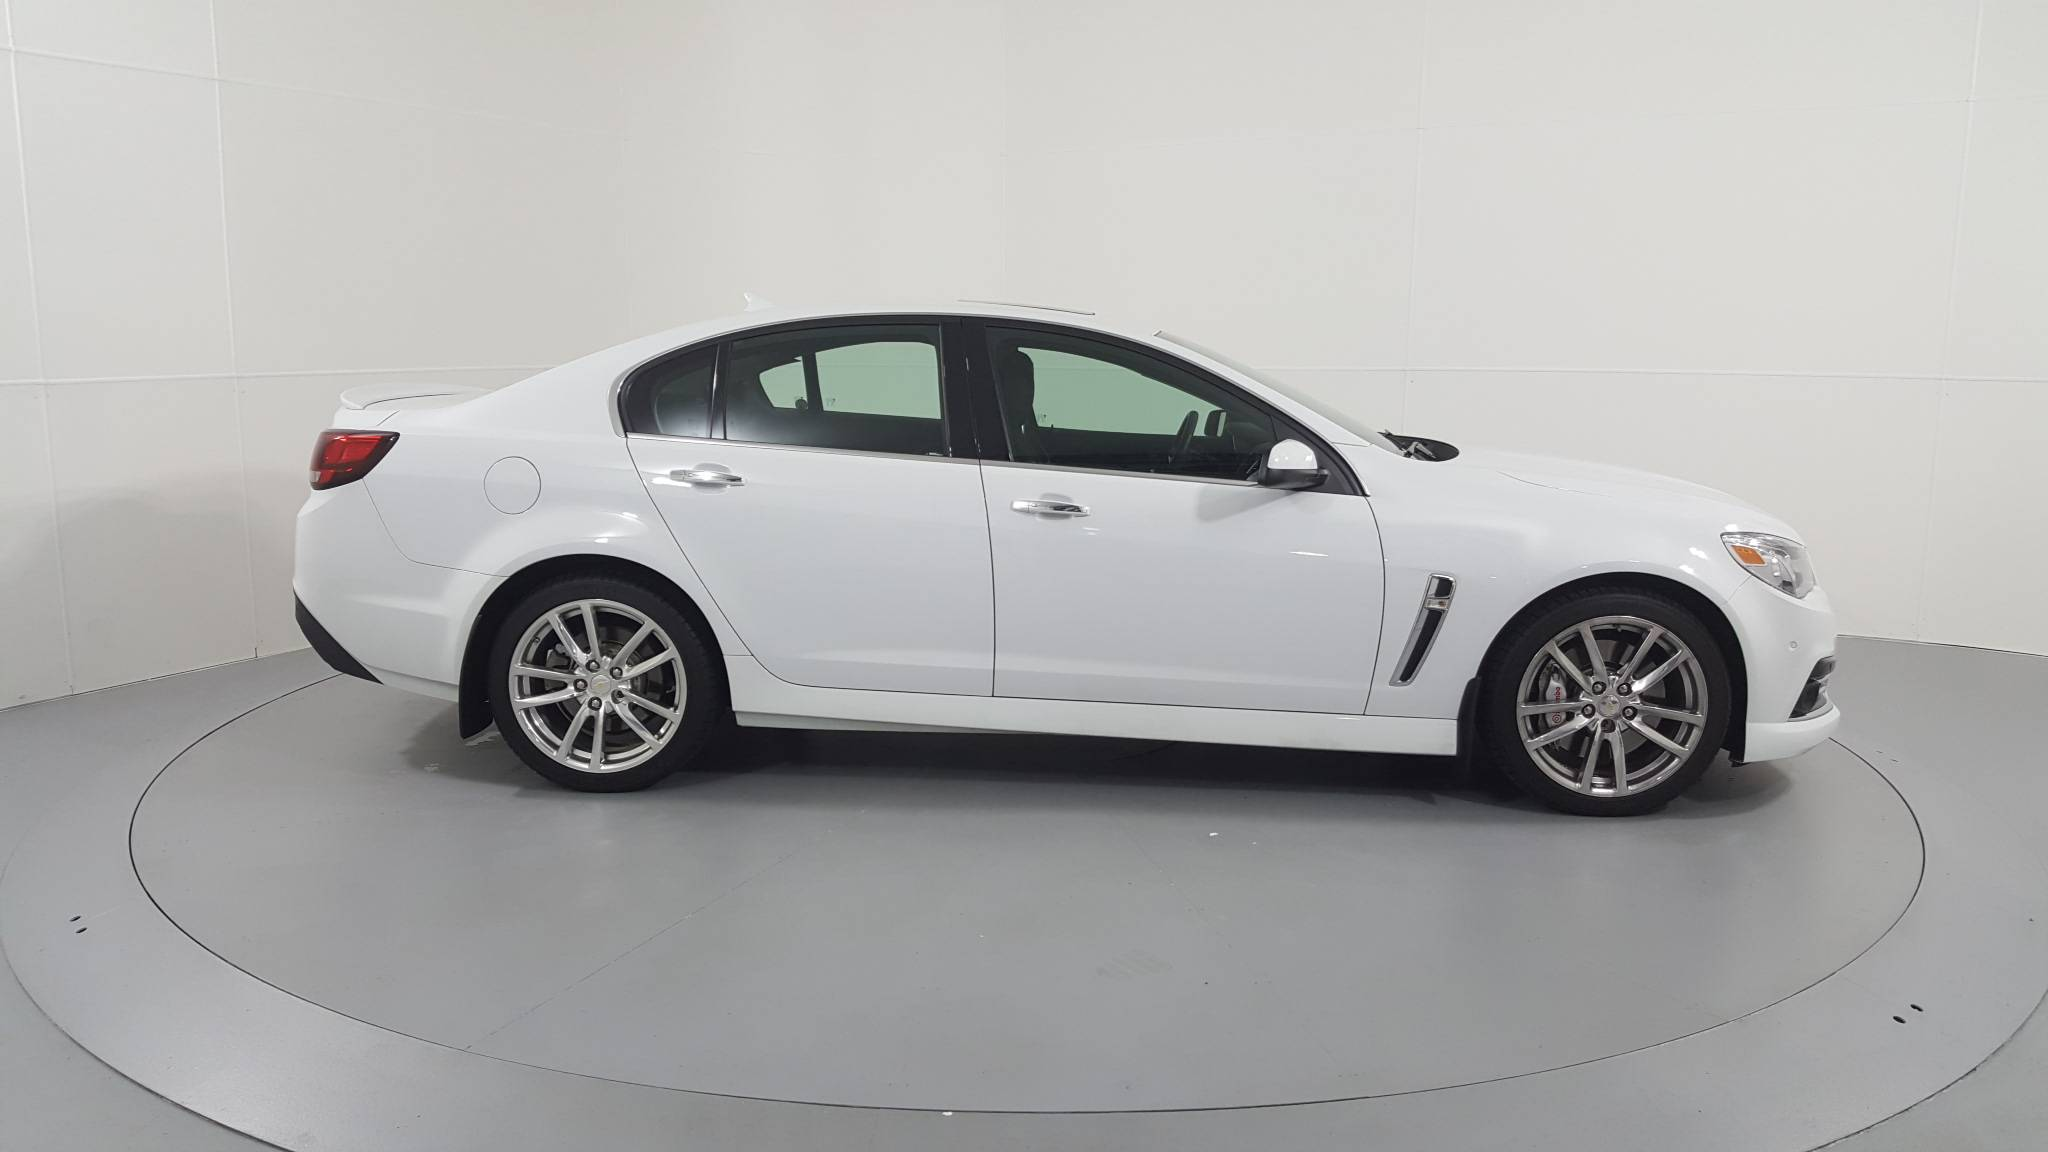 Pre-Owned 2014 Chevrolet SS Sedan CIE PACKAGE